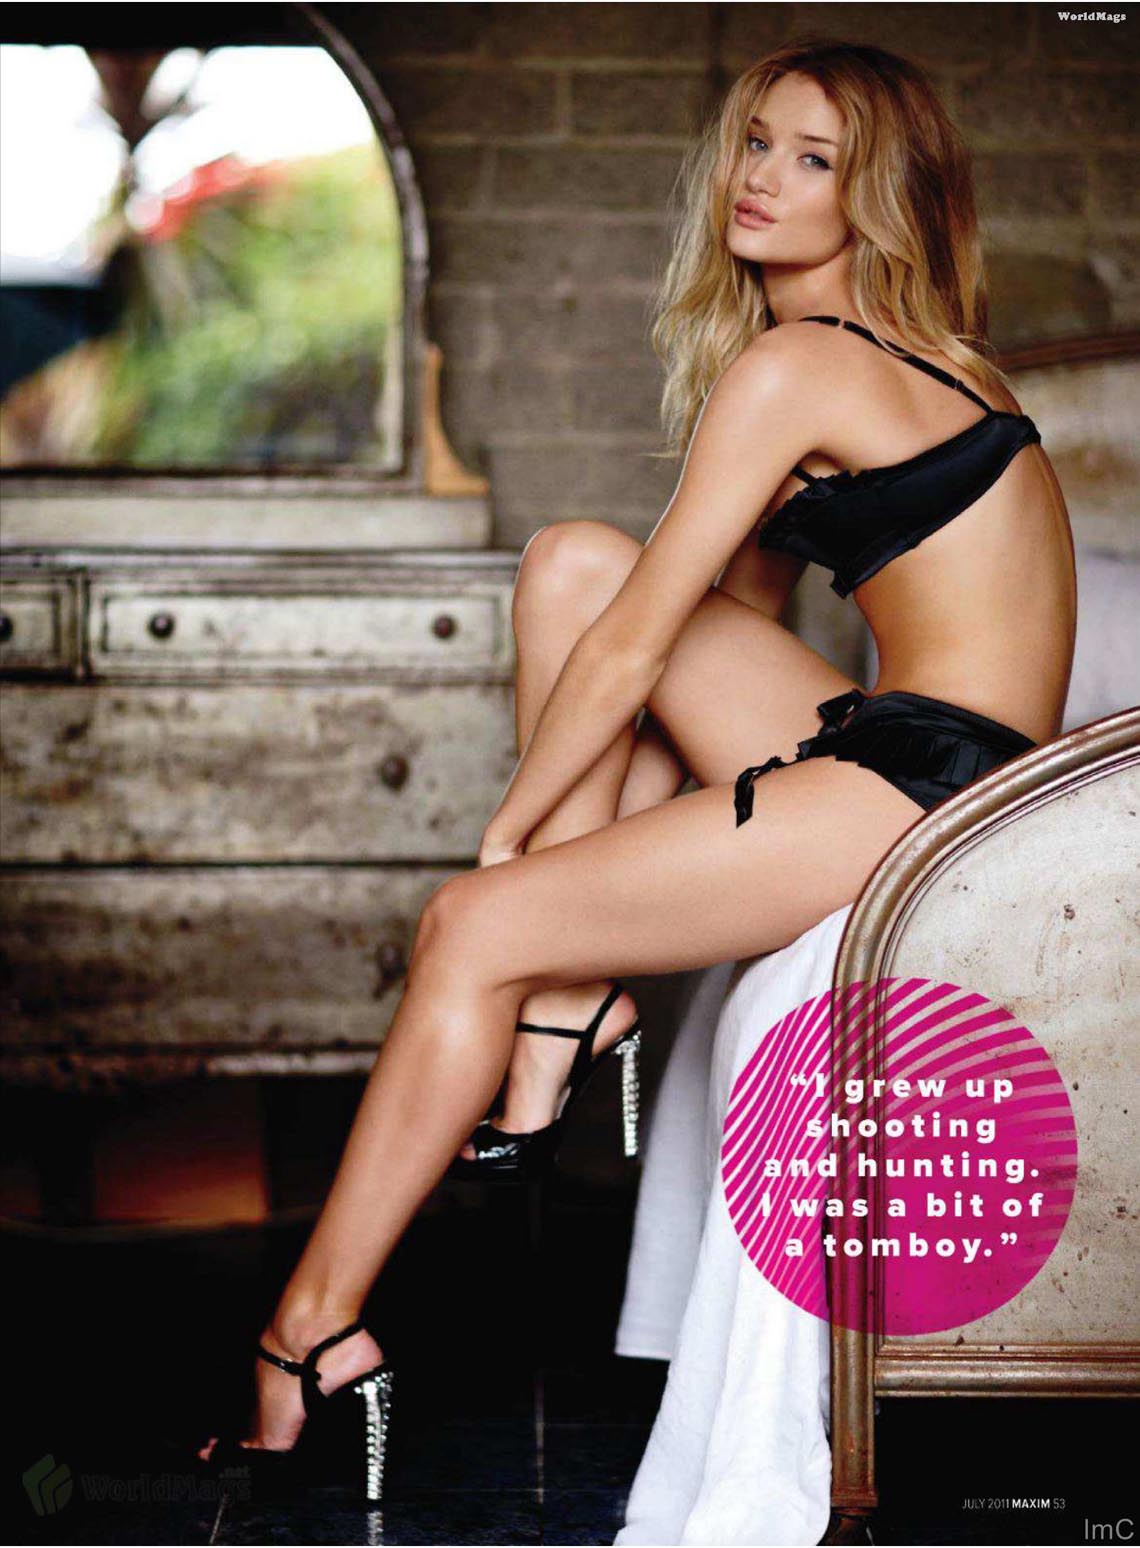 Abstract Wallpaper Rosie Huntington-Whiteley Sexy For Maxim-4919